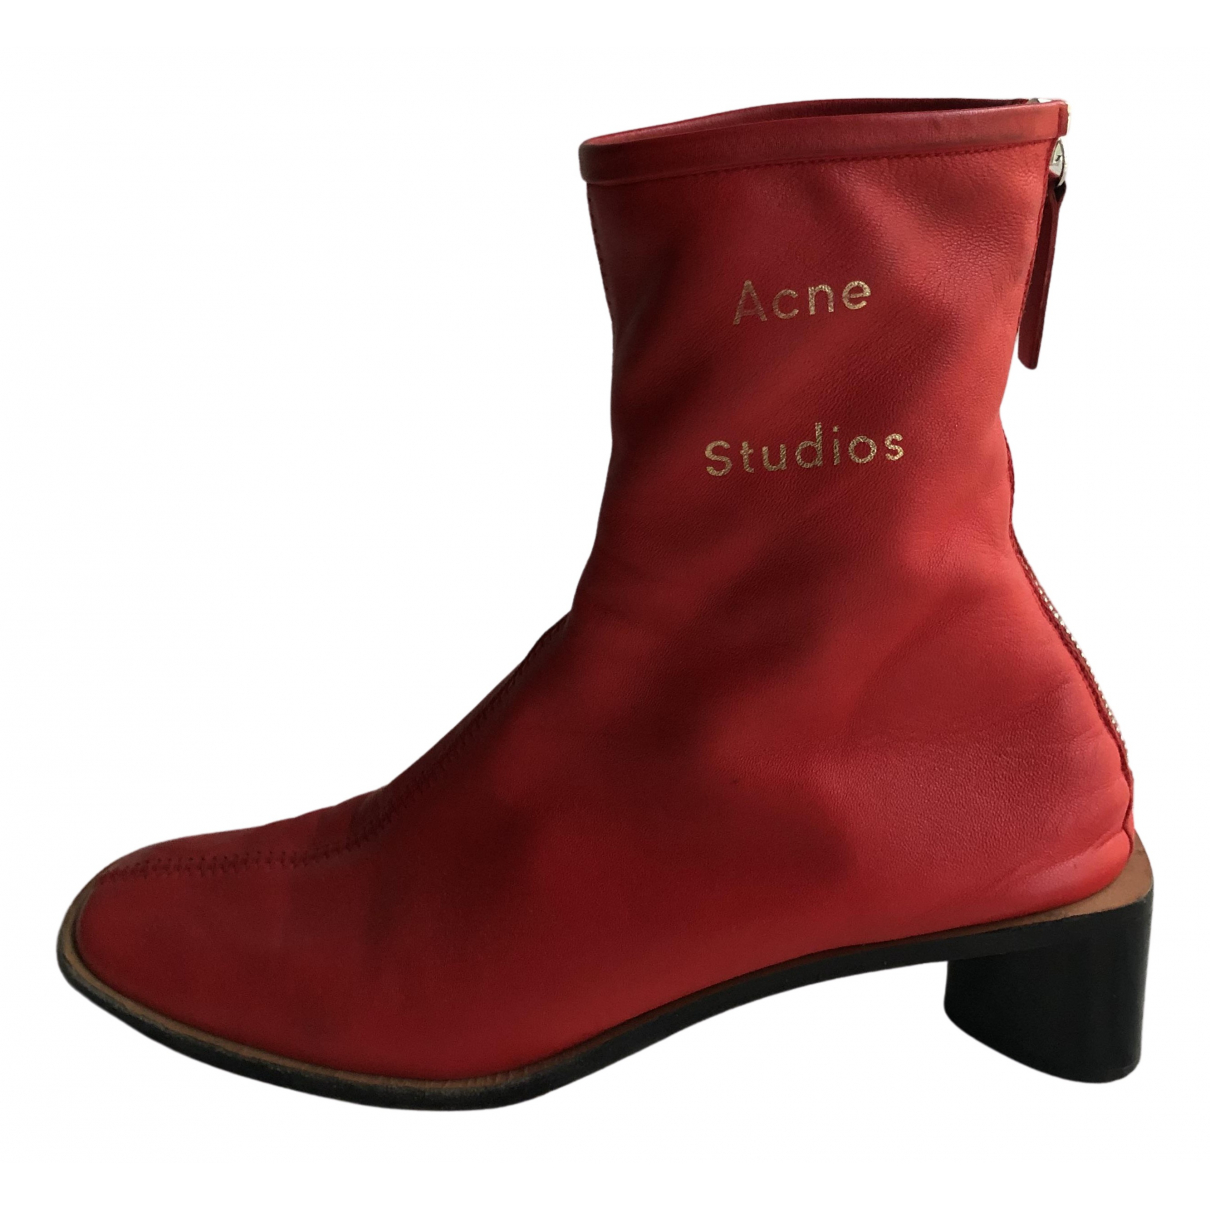 Acne Studios N Red Leather Boots for Women 37 EU